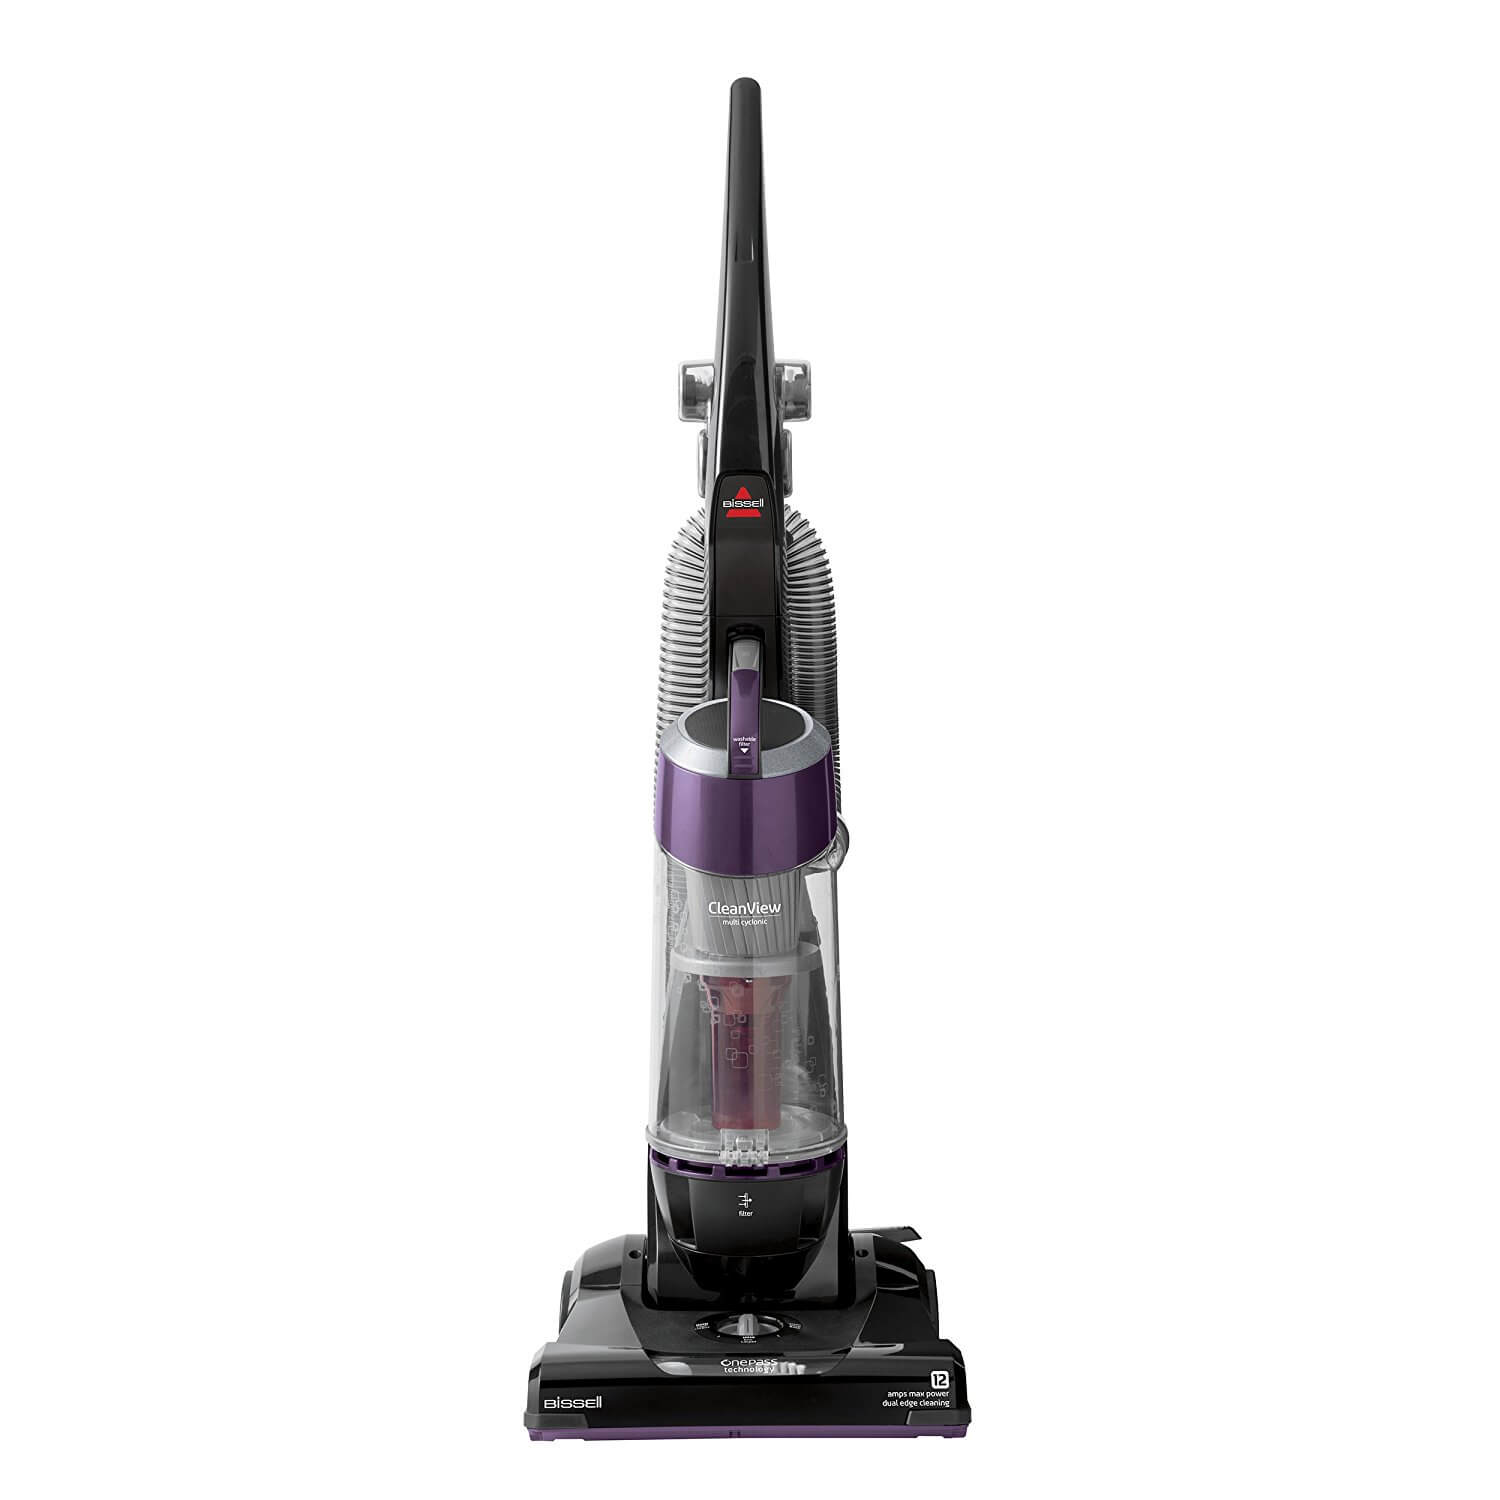 Best Vacuum Under 200 In July 2019 Bestvacuum Reviews